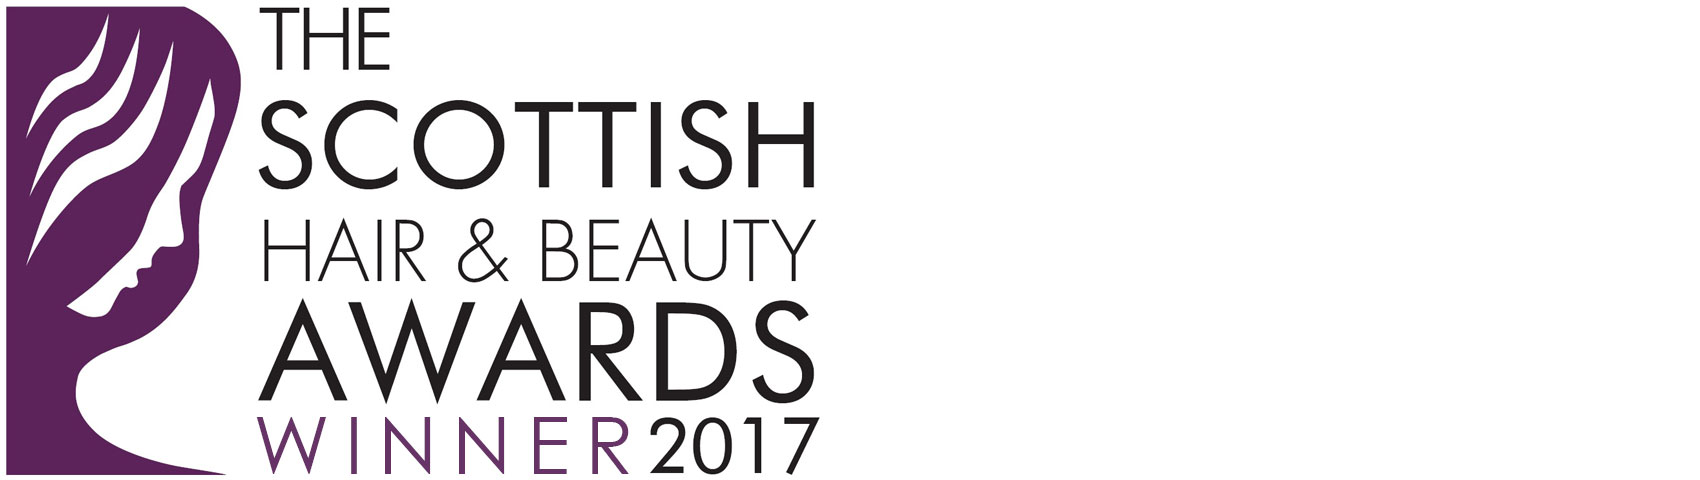 the Scottish hair and beauty awards